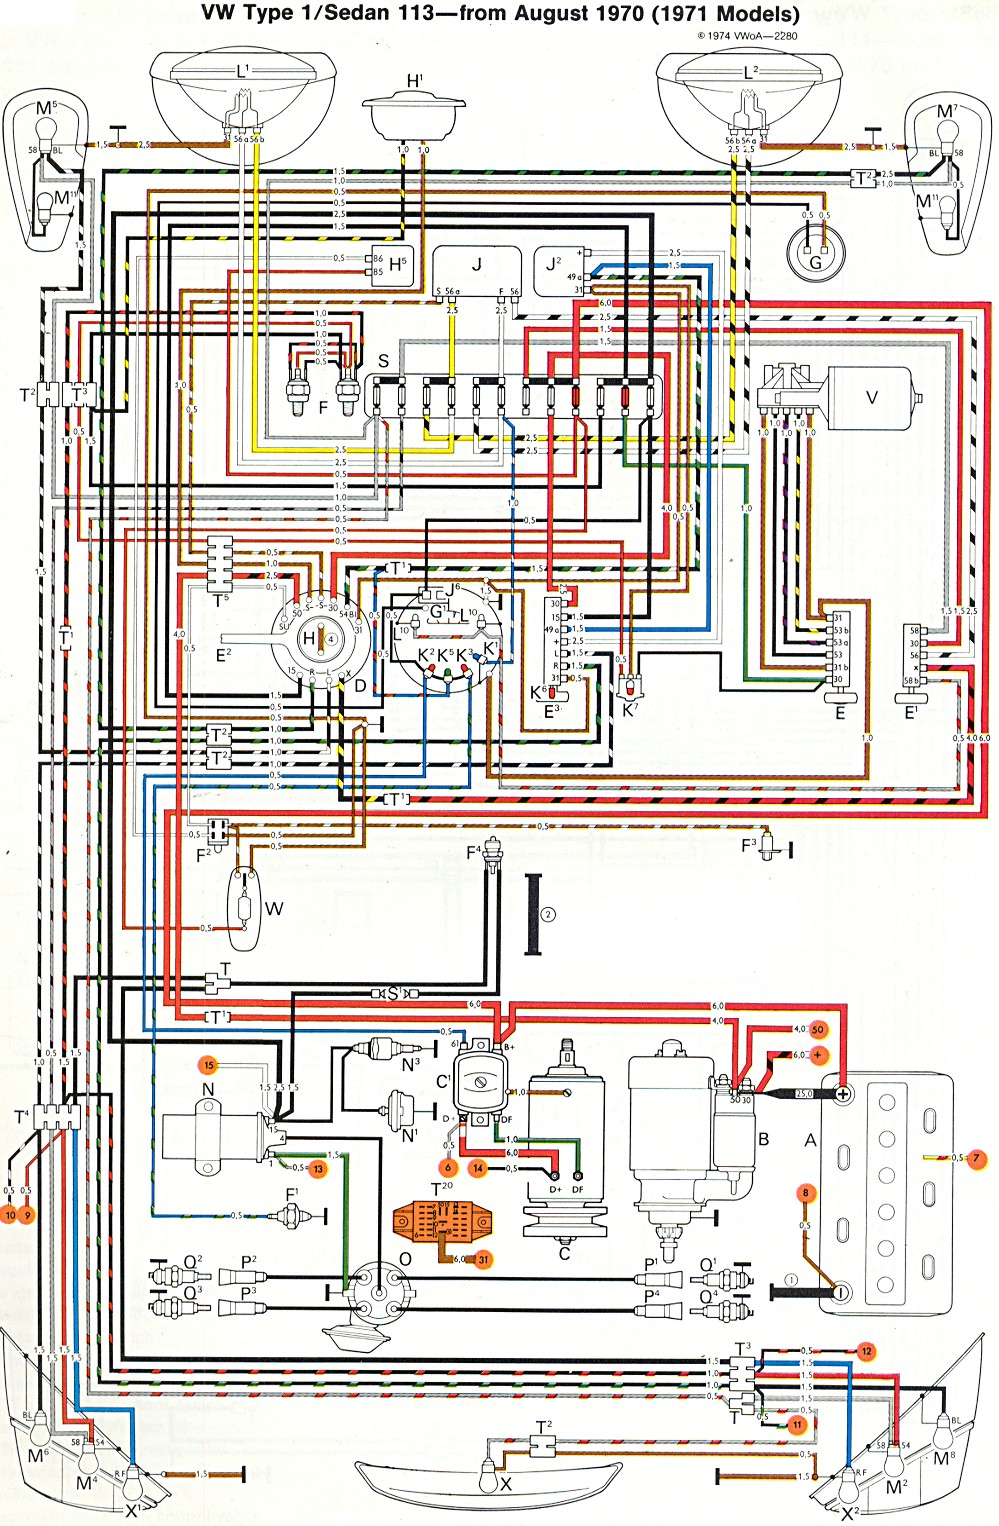 1974 Vw Engine Diagram Wiring Will Be A Thing Ruud Urgg12e61ckr 71 Volkswagen Detailed Schematics Rh Keyplusrubber Com Beetle Type 181 Eng